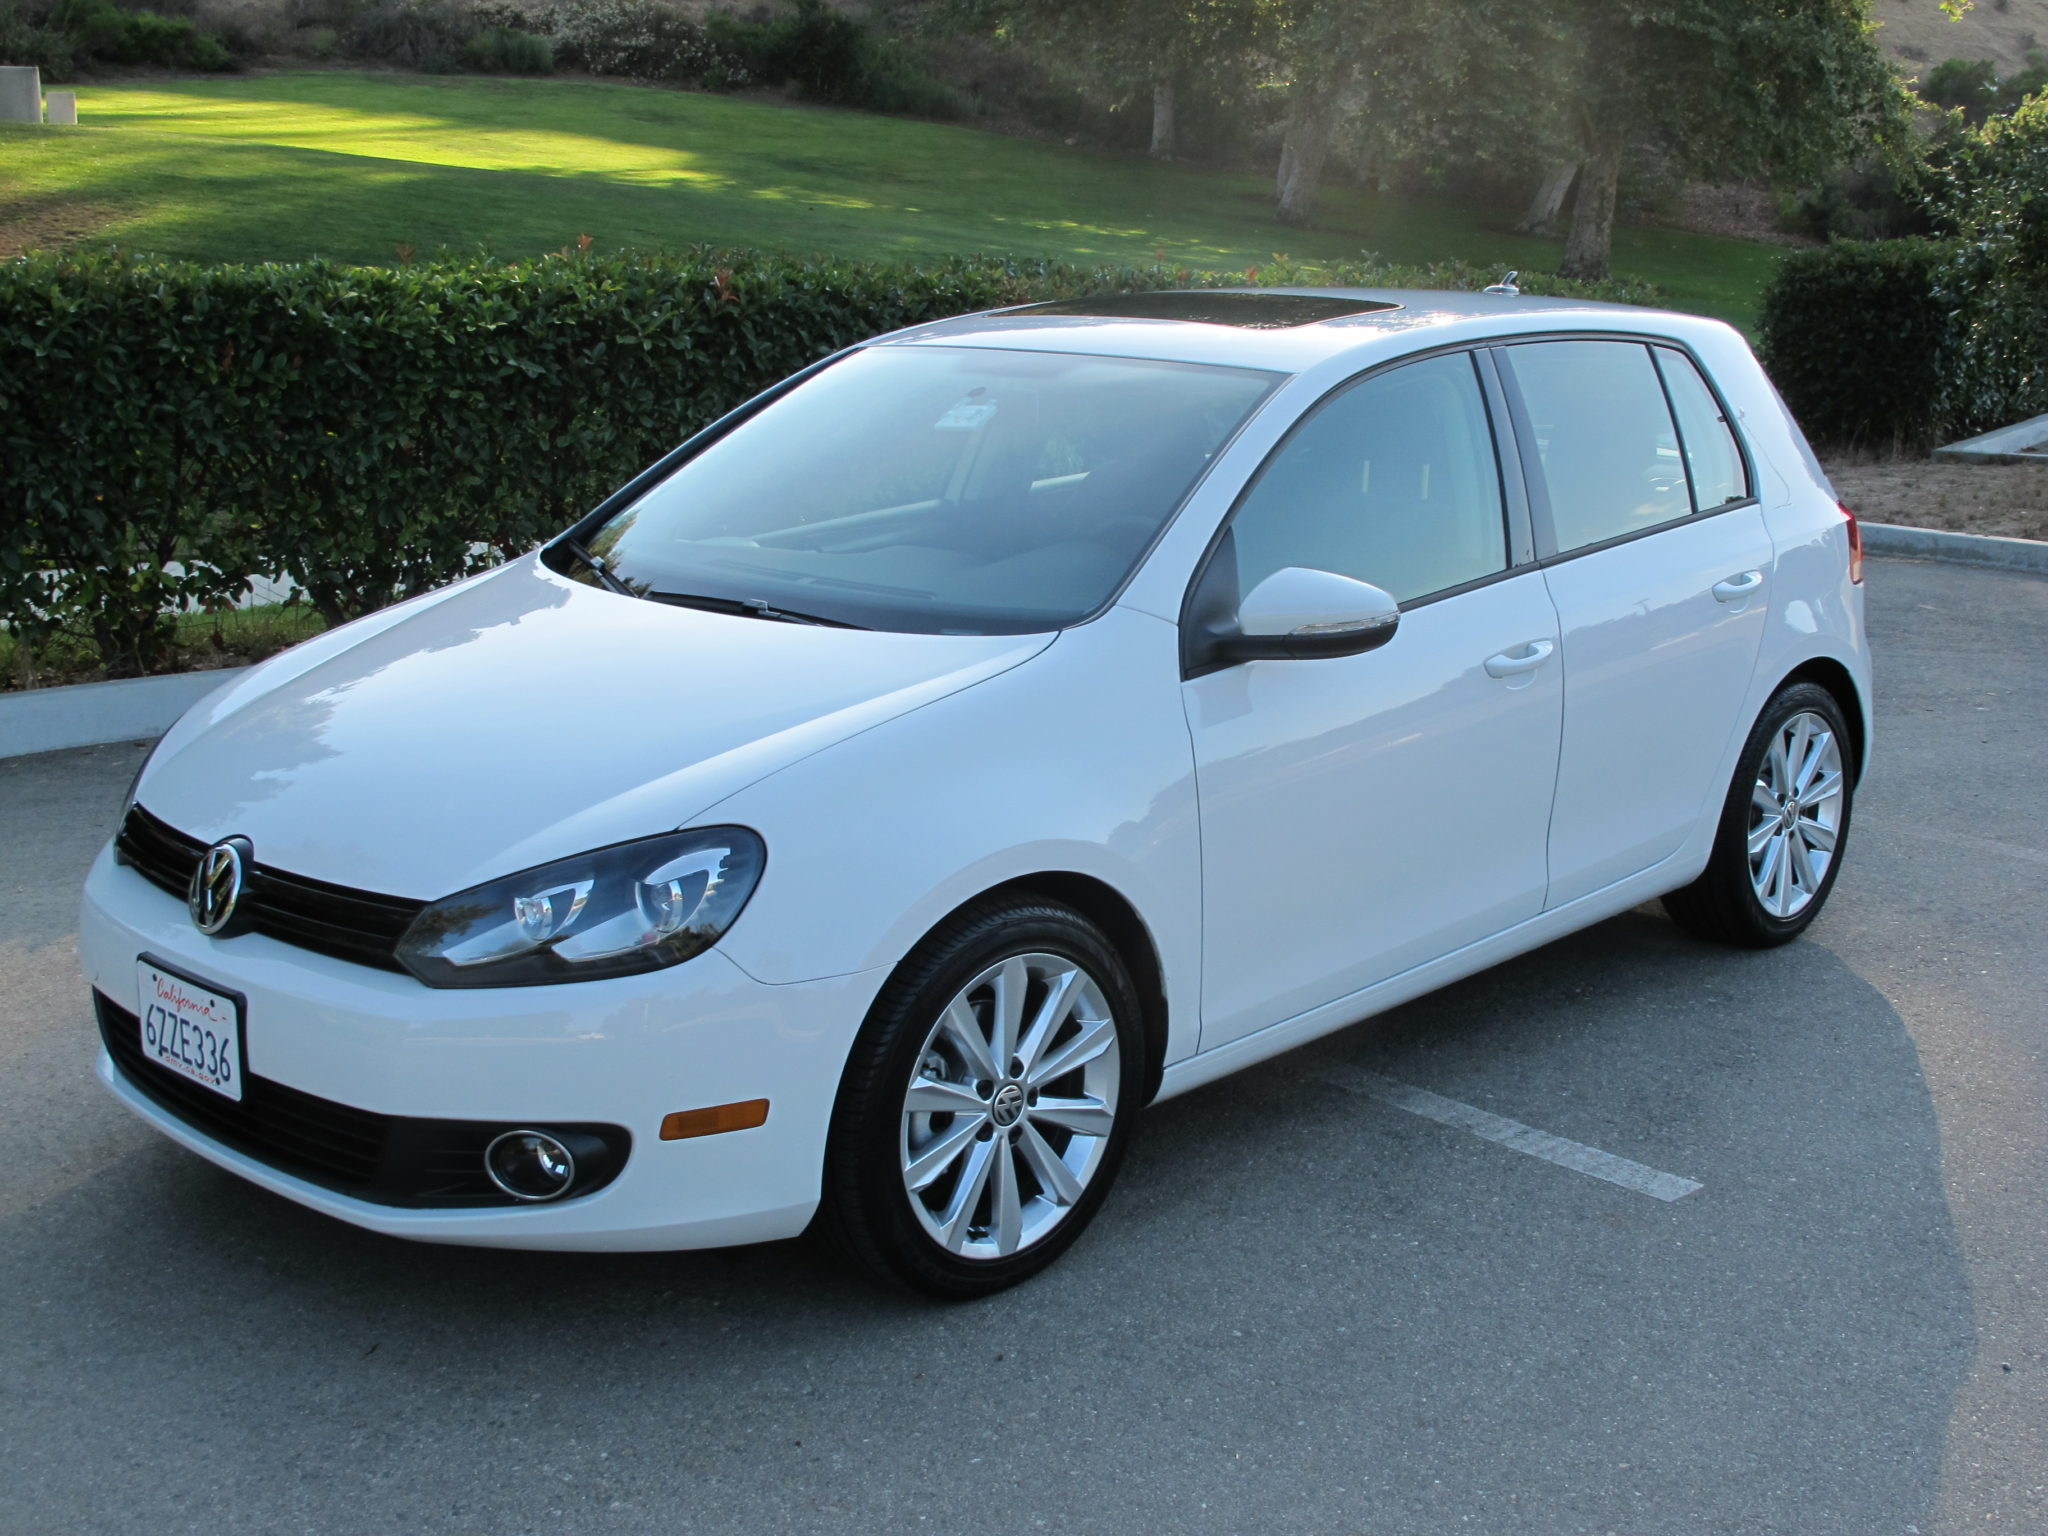 Volkswagen Tdi Mpg First Drive Comparison 2013 Vw Golf Tdi Vs 2015 Vw Golf Tdi